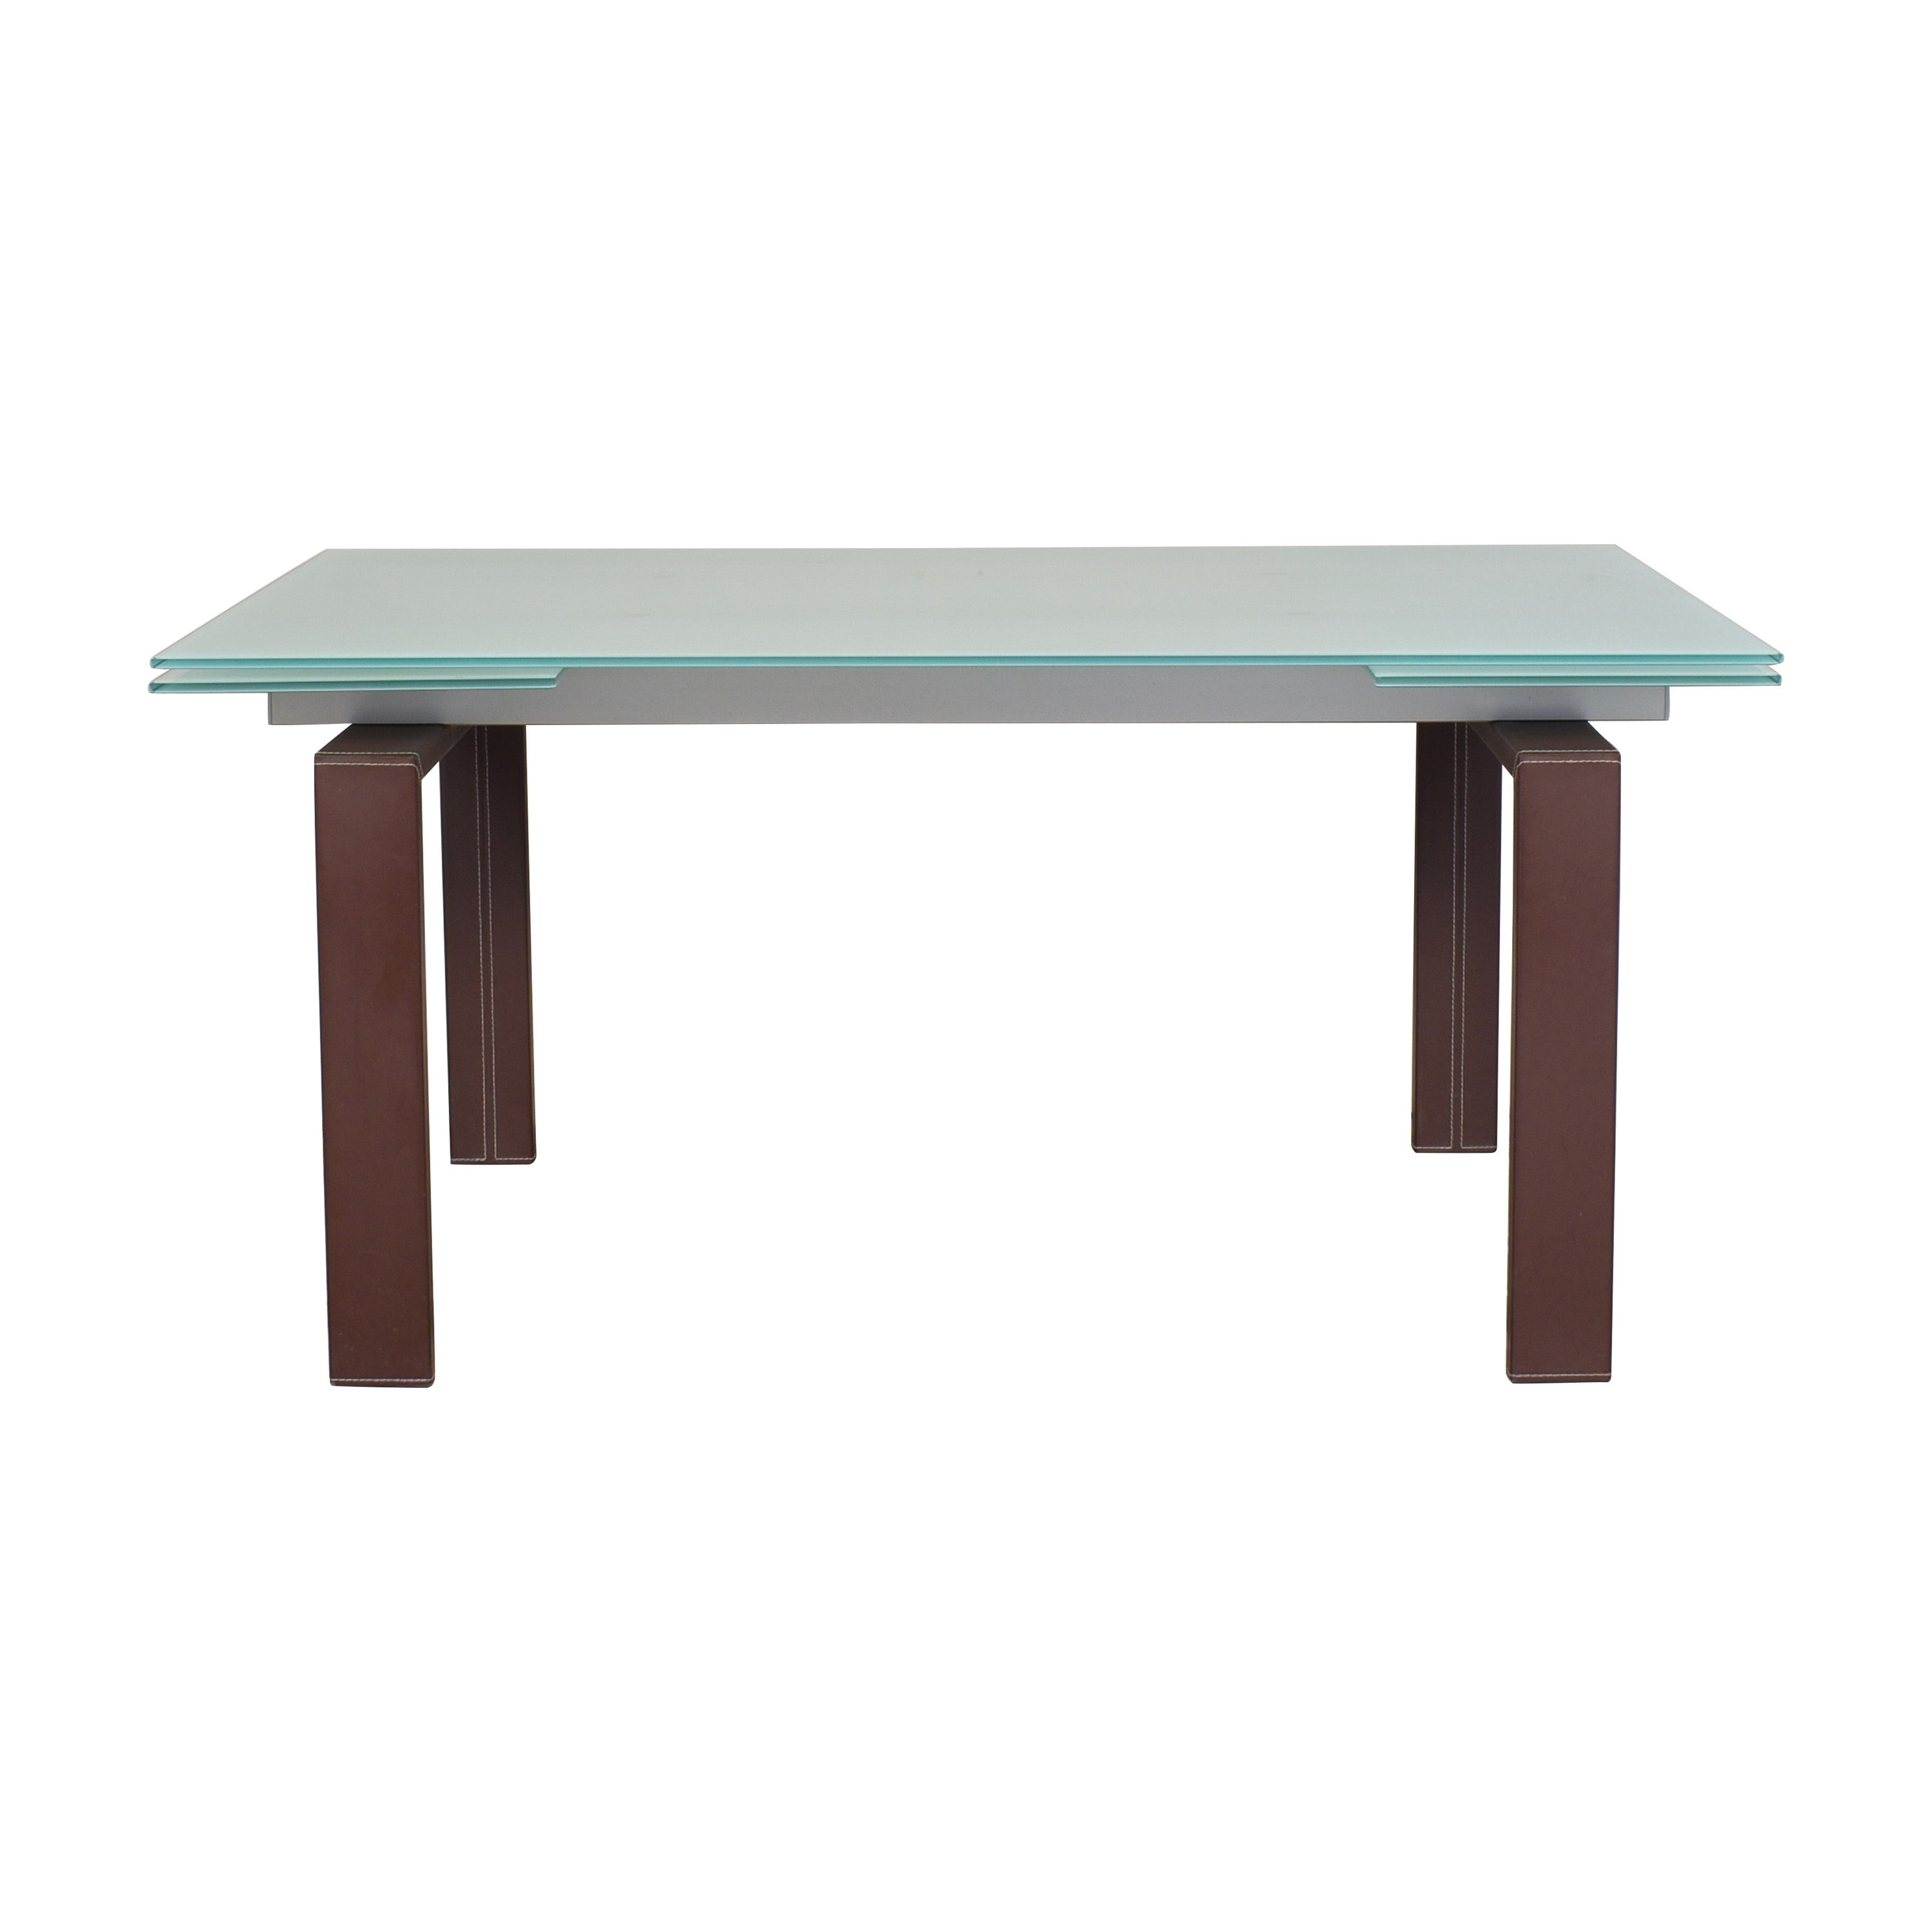 44 Off Calligaris Calligaris Hyper Extendable Dining Table Tables